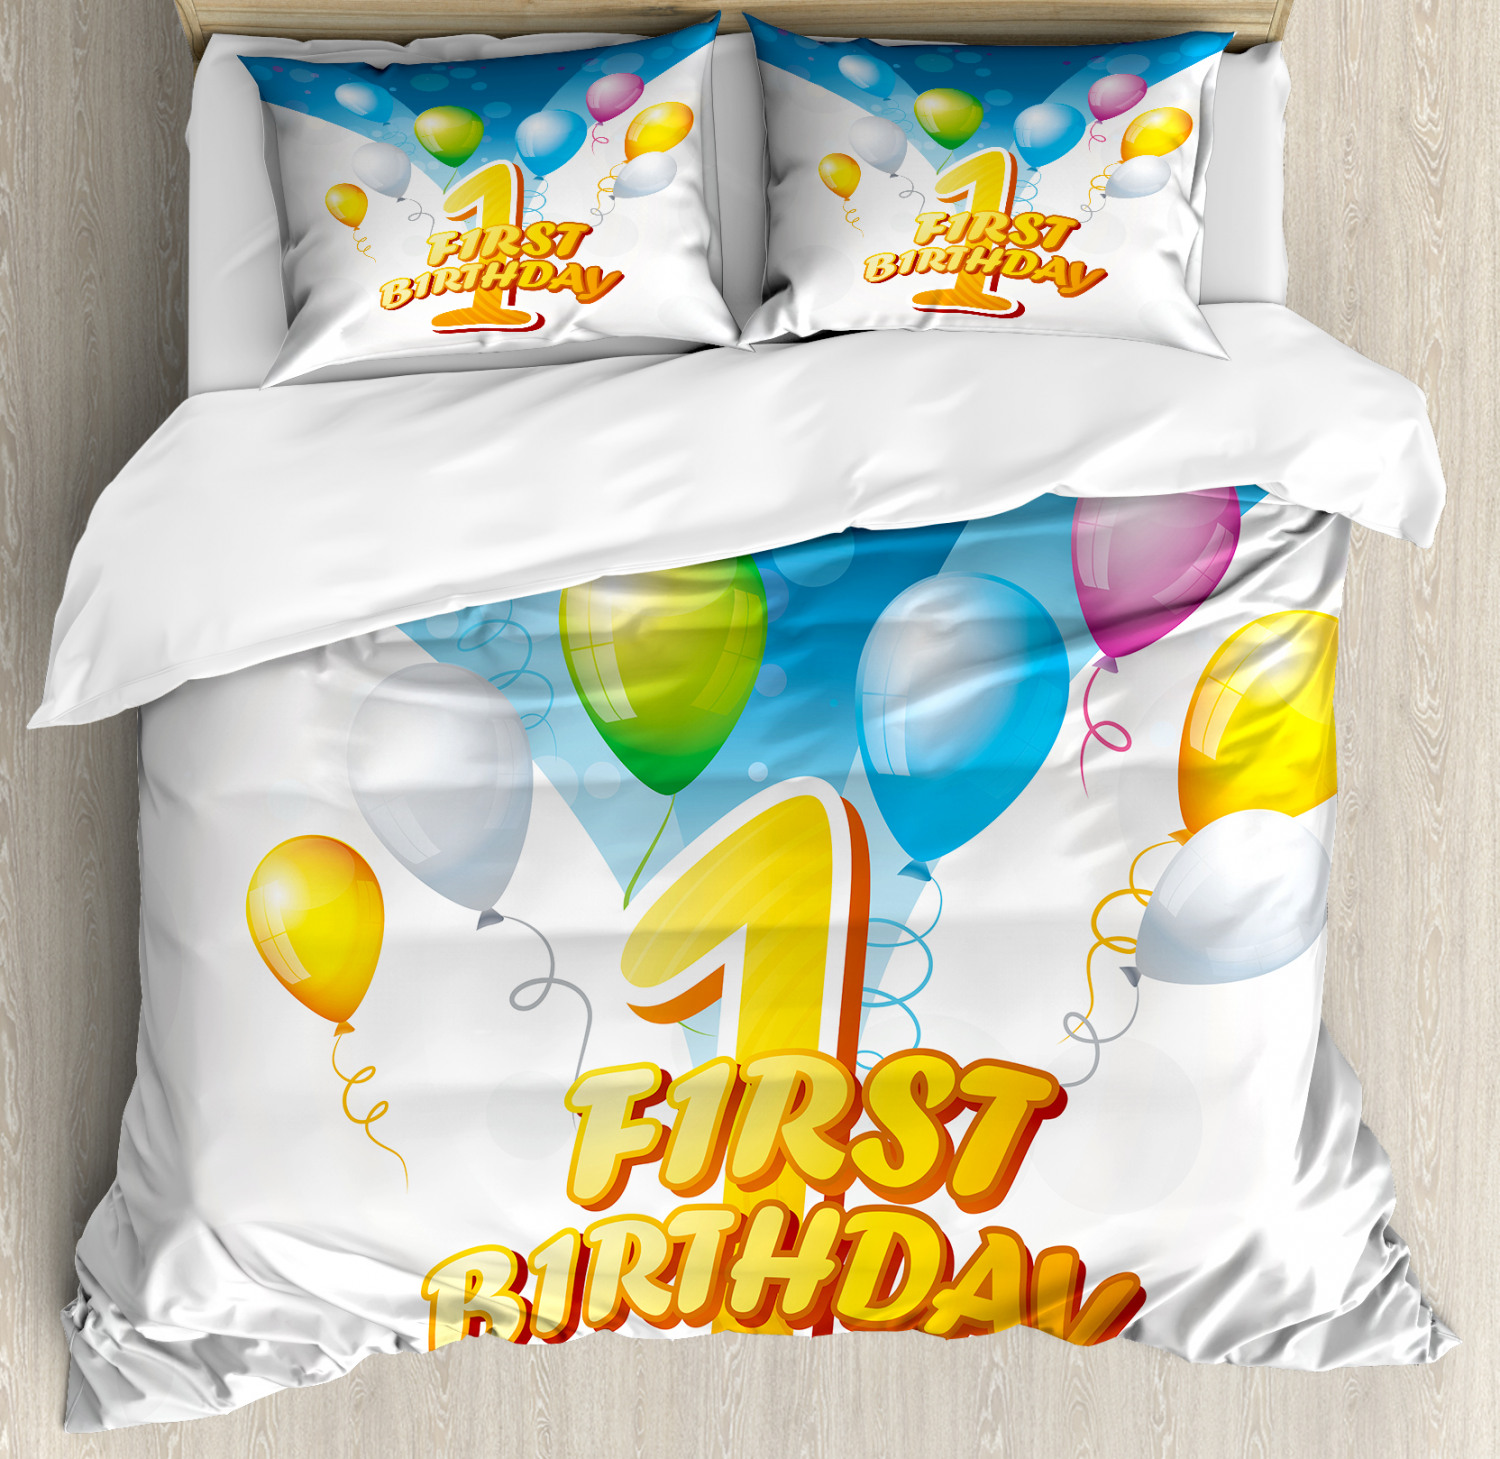 Abstract Duvet Cover Set with Pillow Shams Party Theme Balloons Print